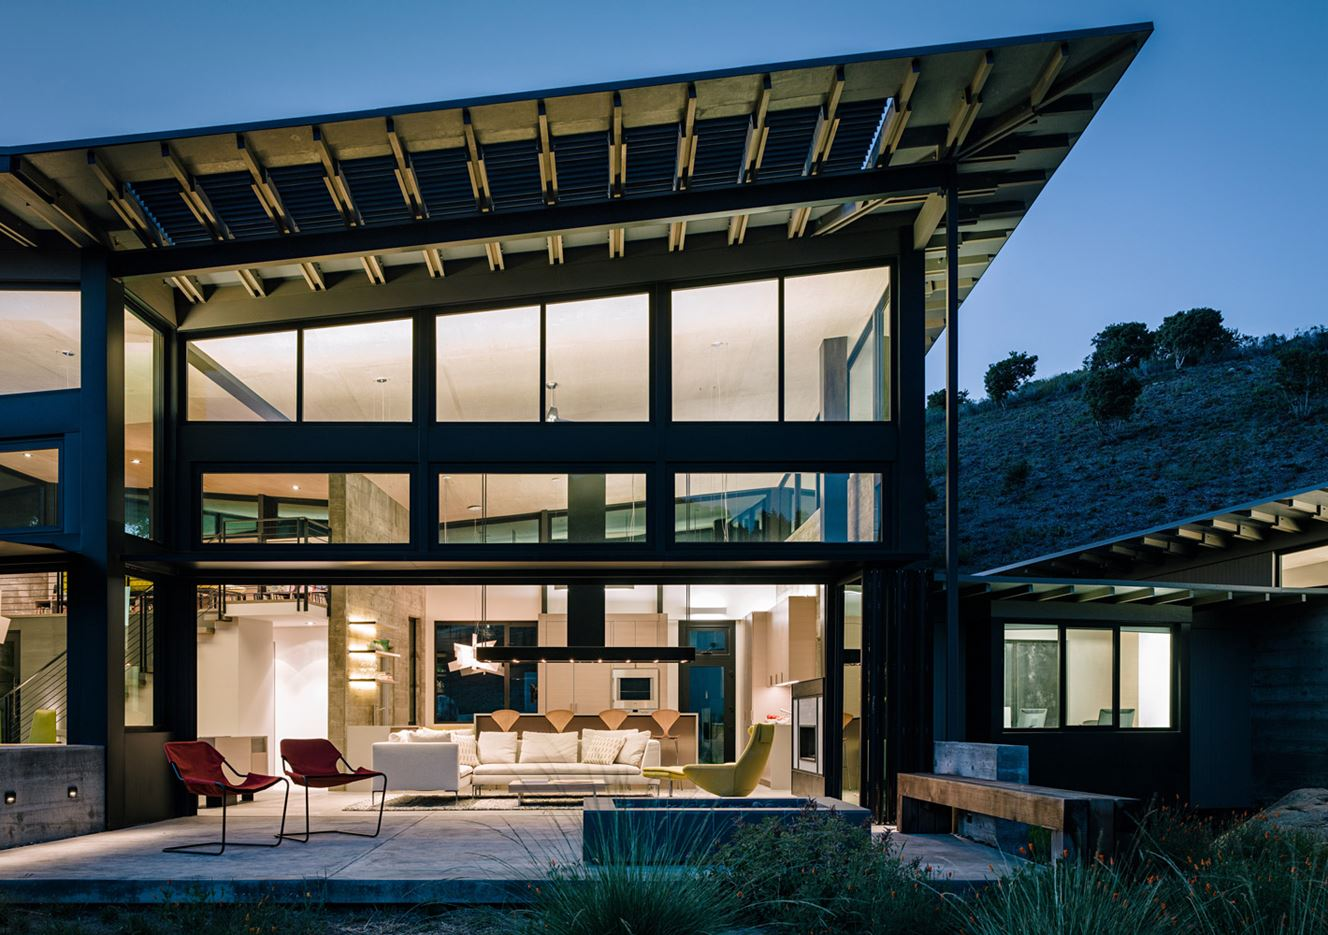 Butterfly House in Carmel, CA by Feldman Architecture